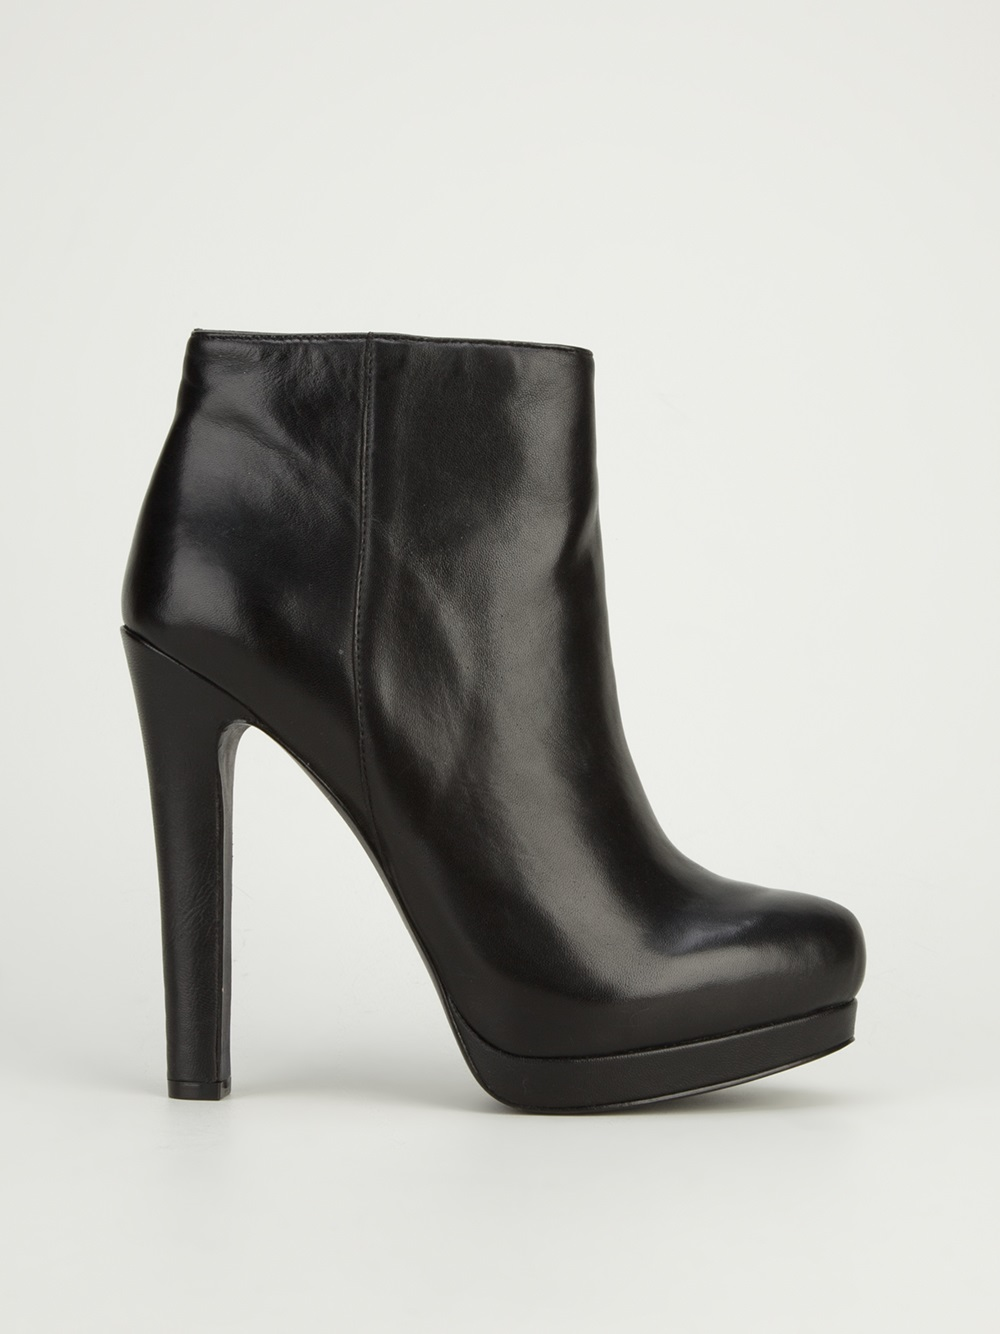 Find high heel ankle boots at ShopStyle. Shop the latest collection of high heel ankle boots from the most popular stores - all in one place.